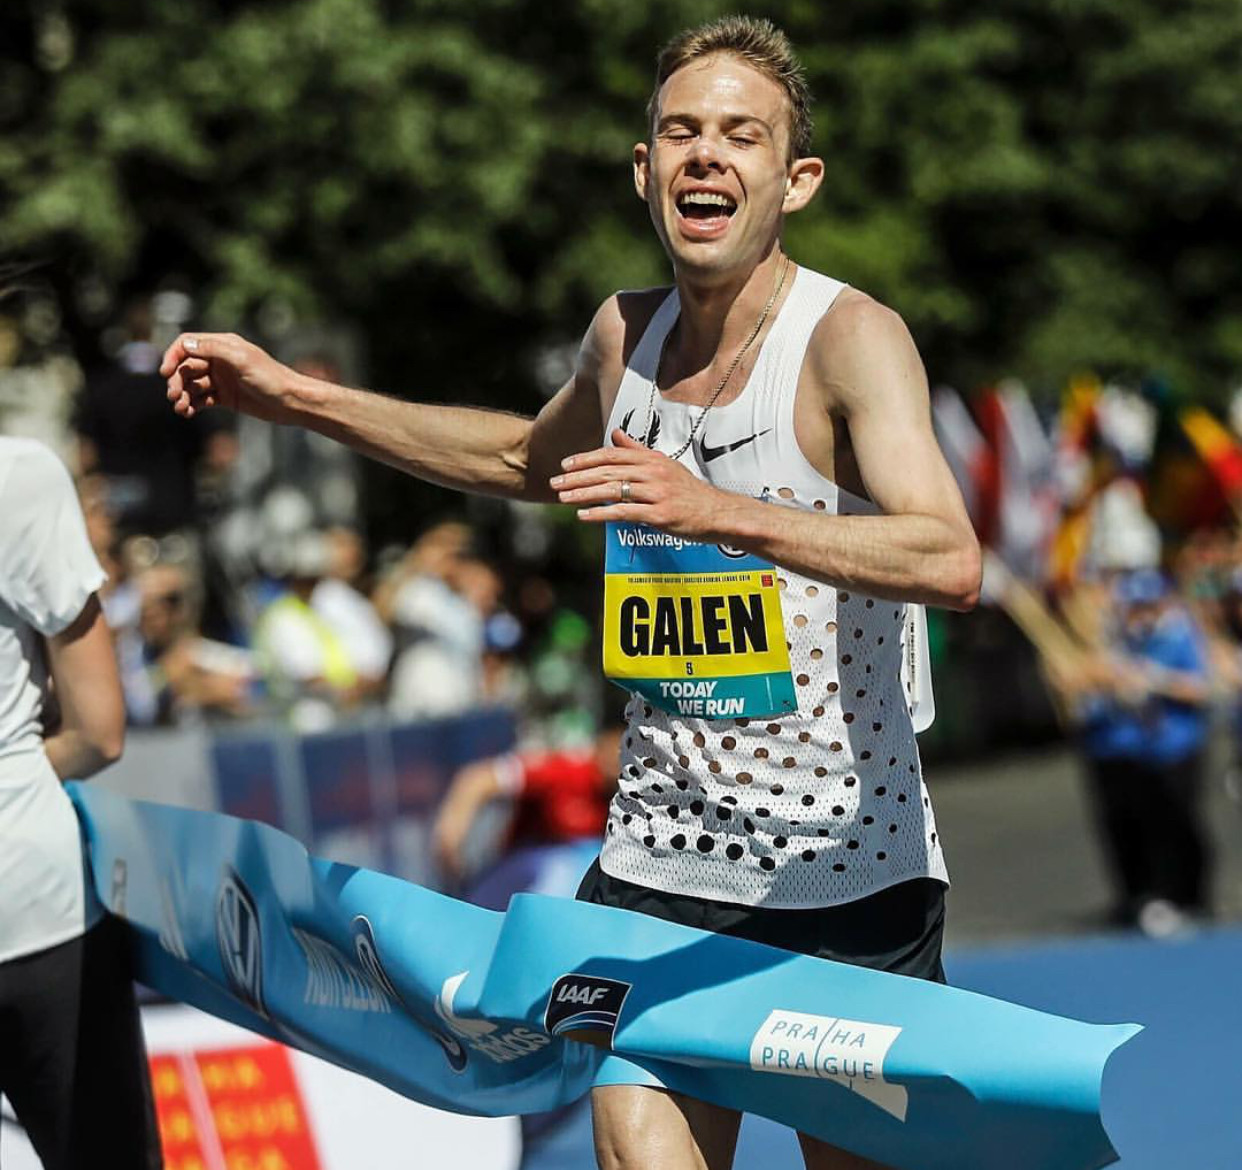 Galen Rupp smashed his PR and won the Prague Marathon by nearly a minute clocking 2:06:07